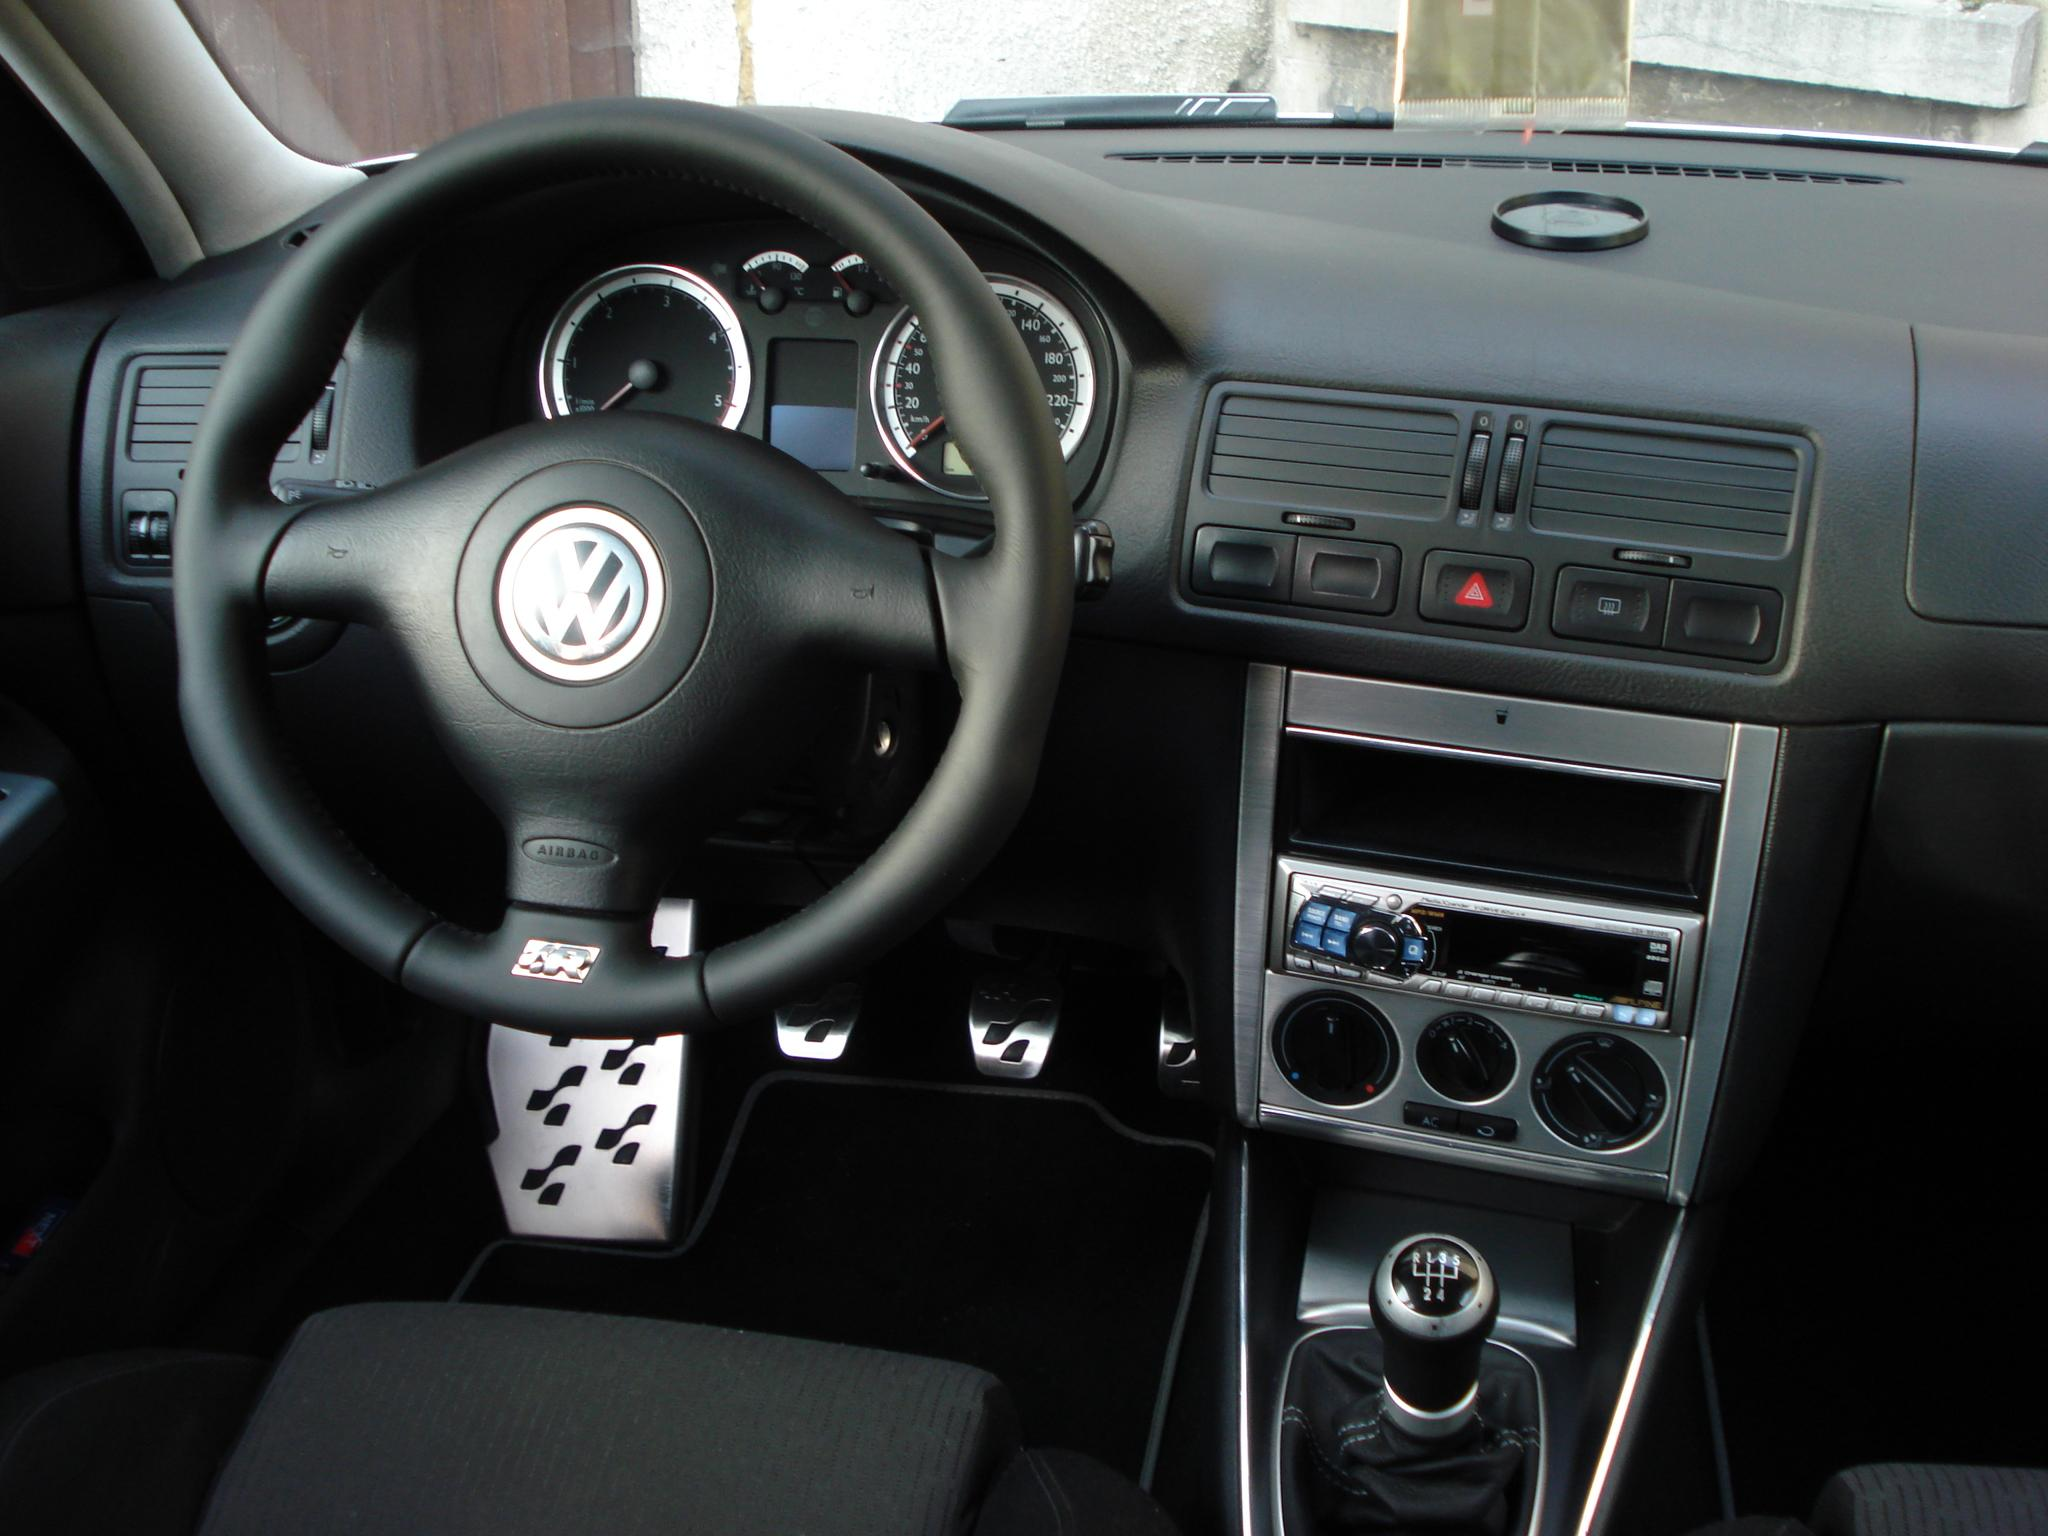 Golf 4 interieur annonce golf 4 interieur beige an 2002 for Lederen interieur golf 4